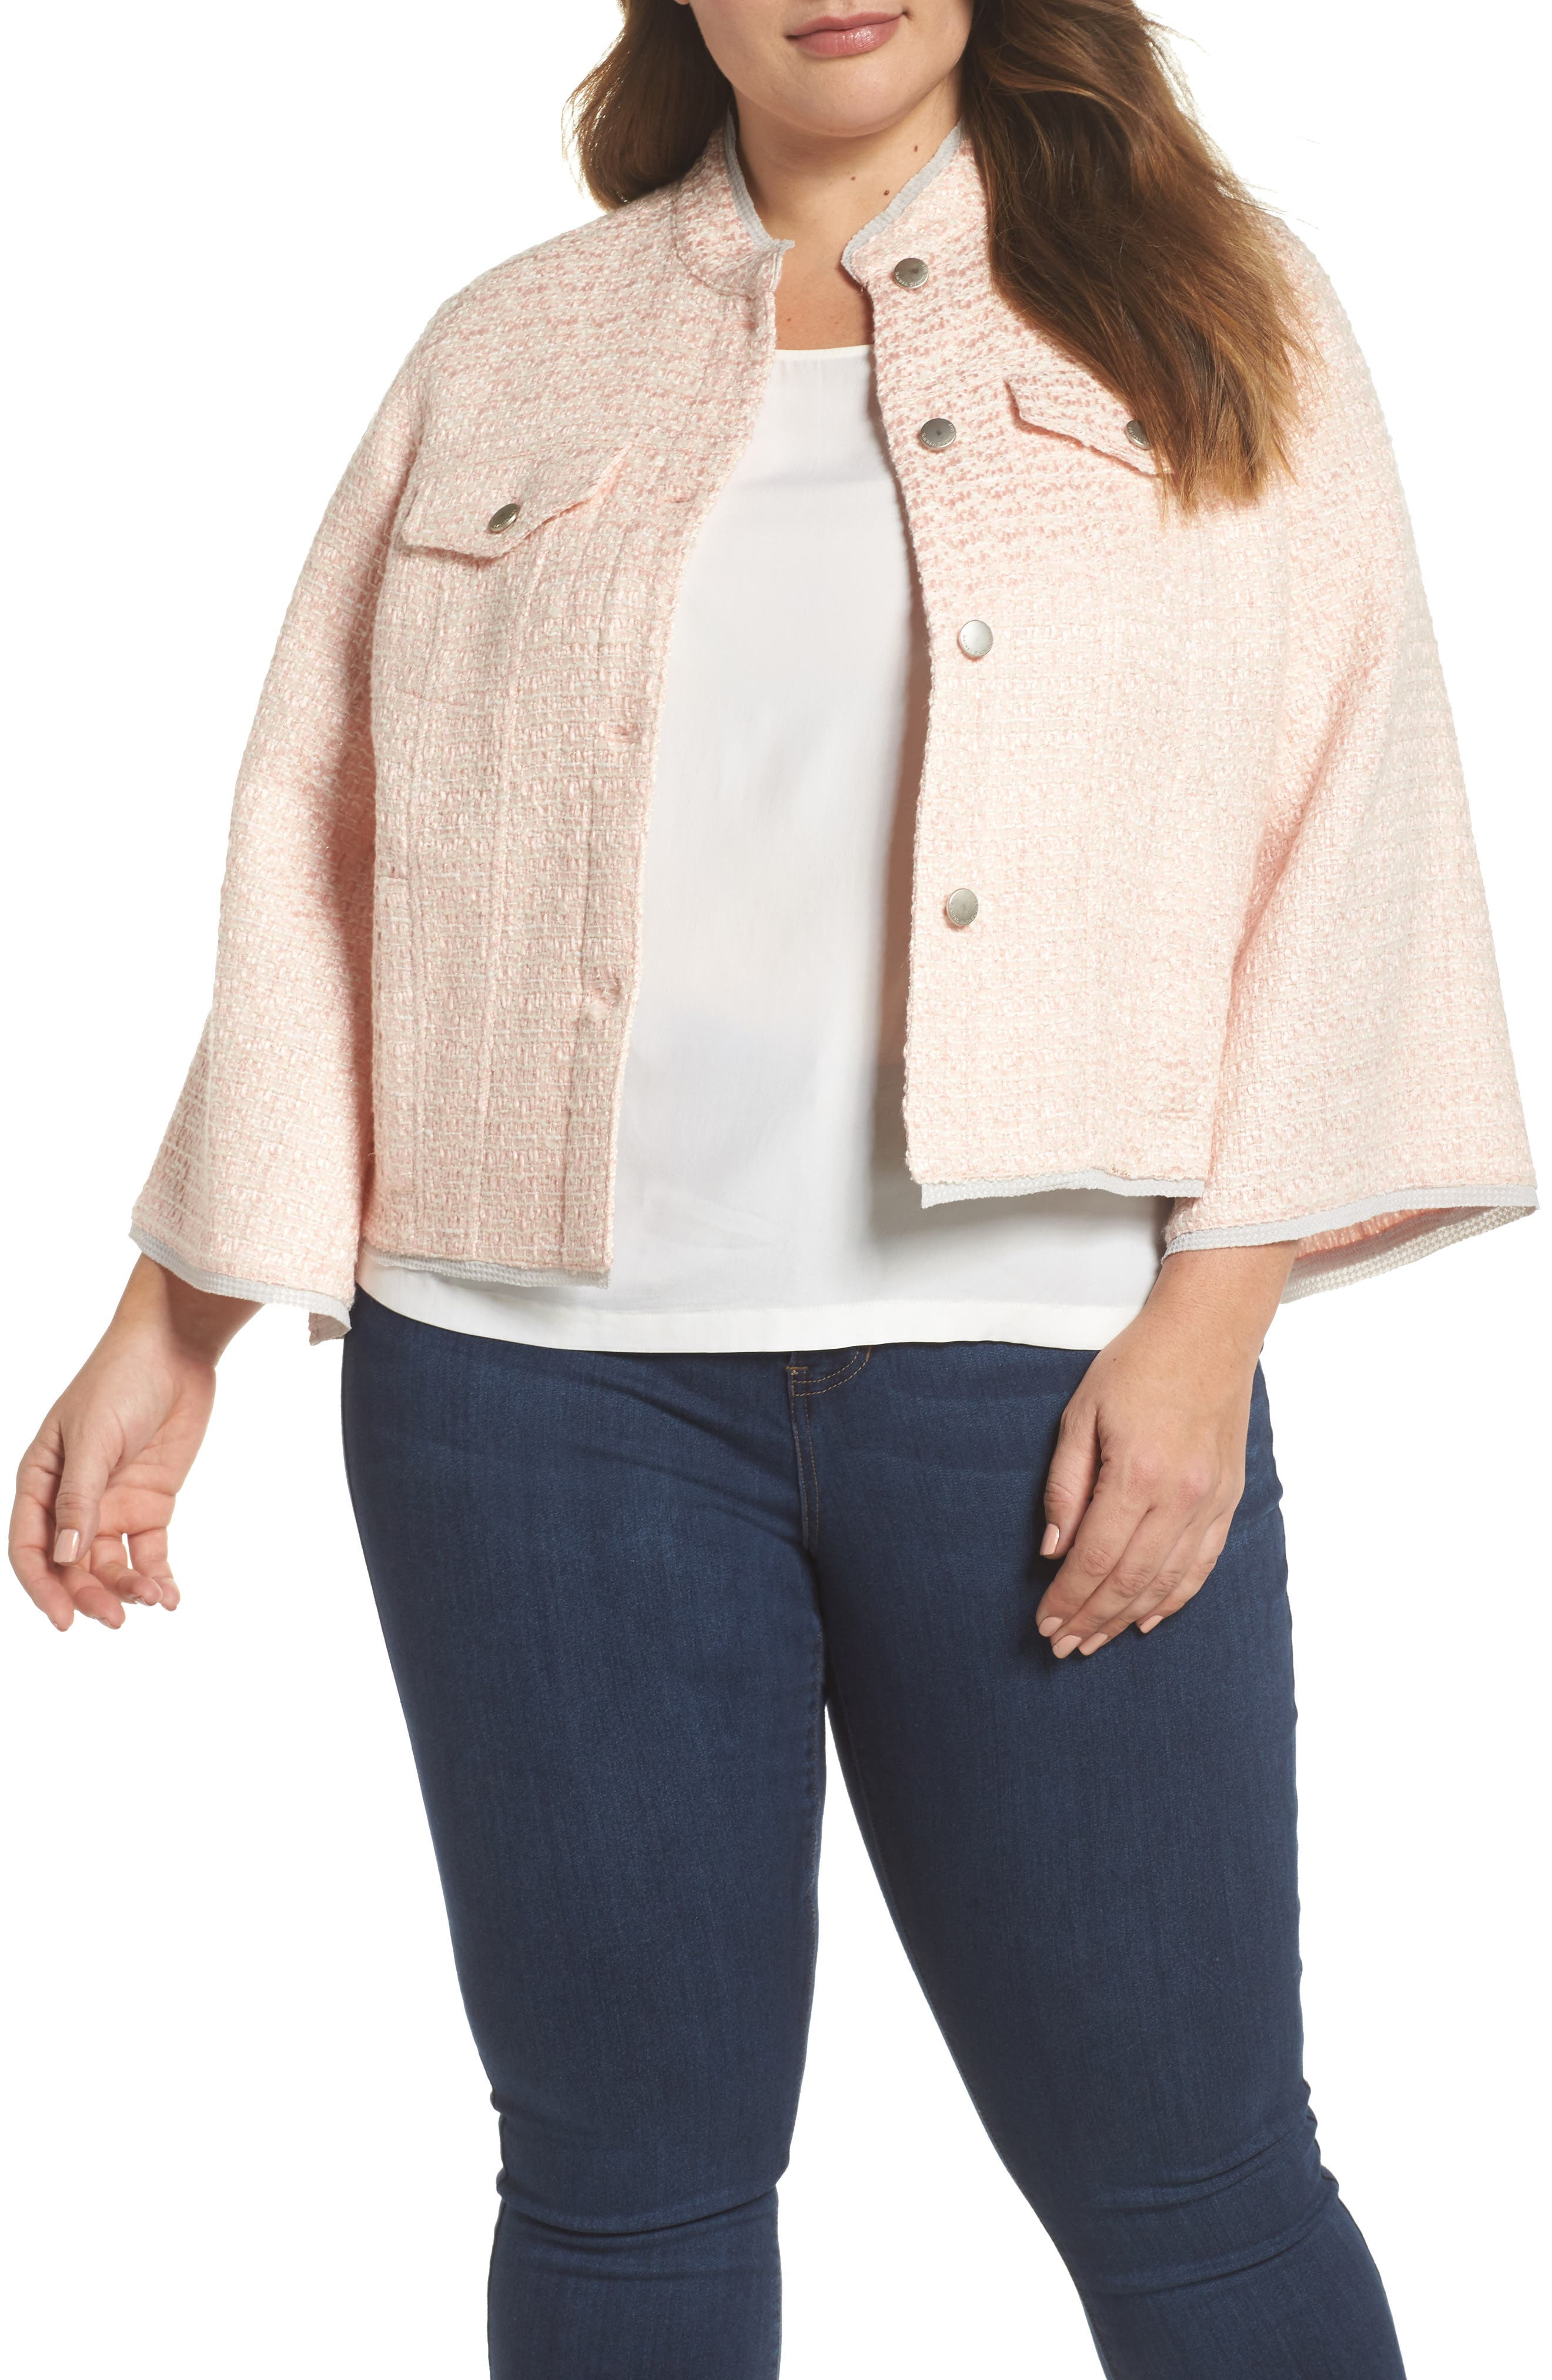 Bell Sleeve Crop Tweed Jacket,                             Main thumbnail 1, color,                             Ice Pink Combo